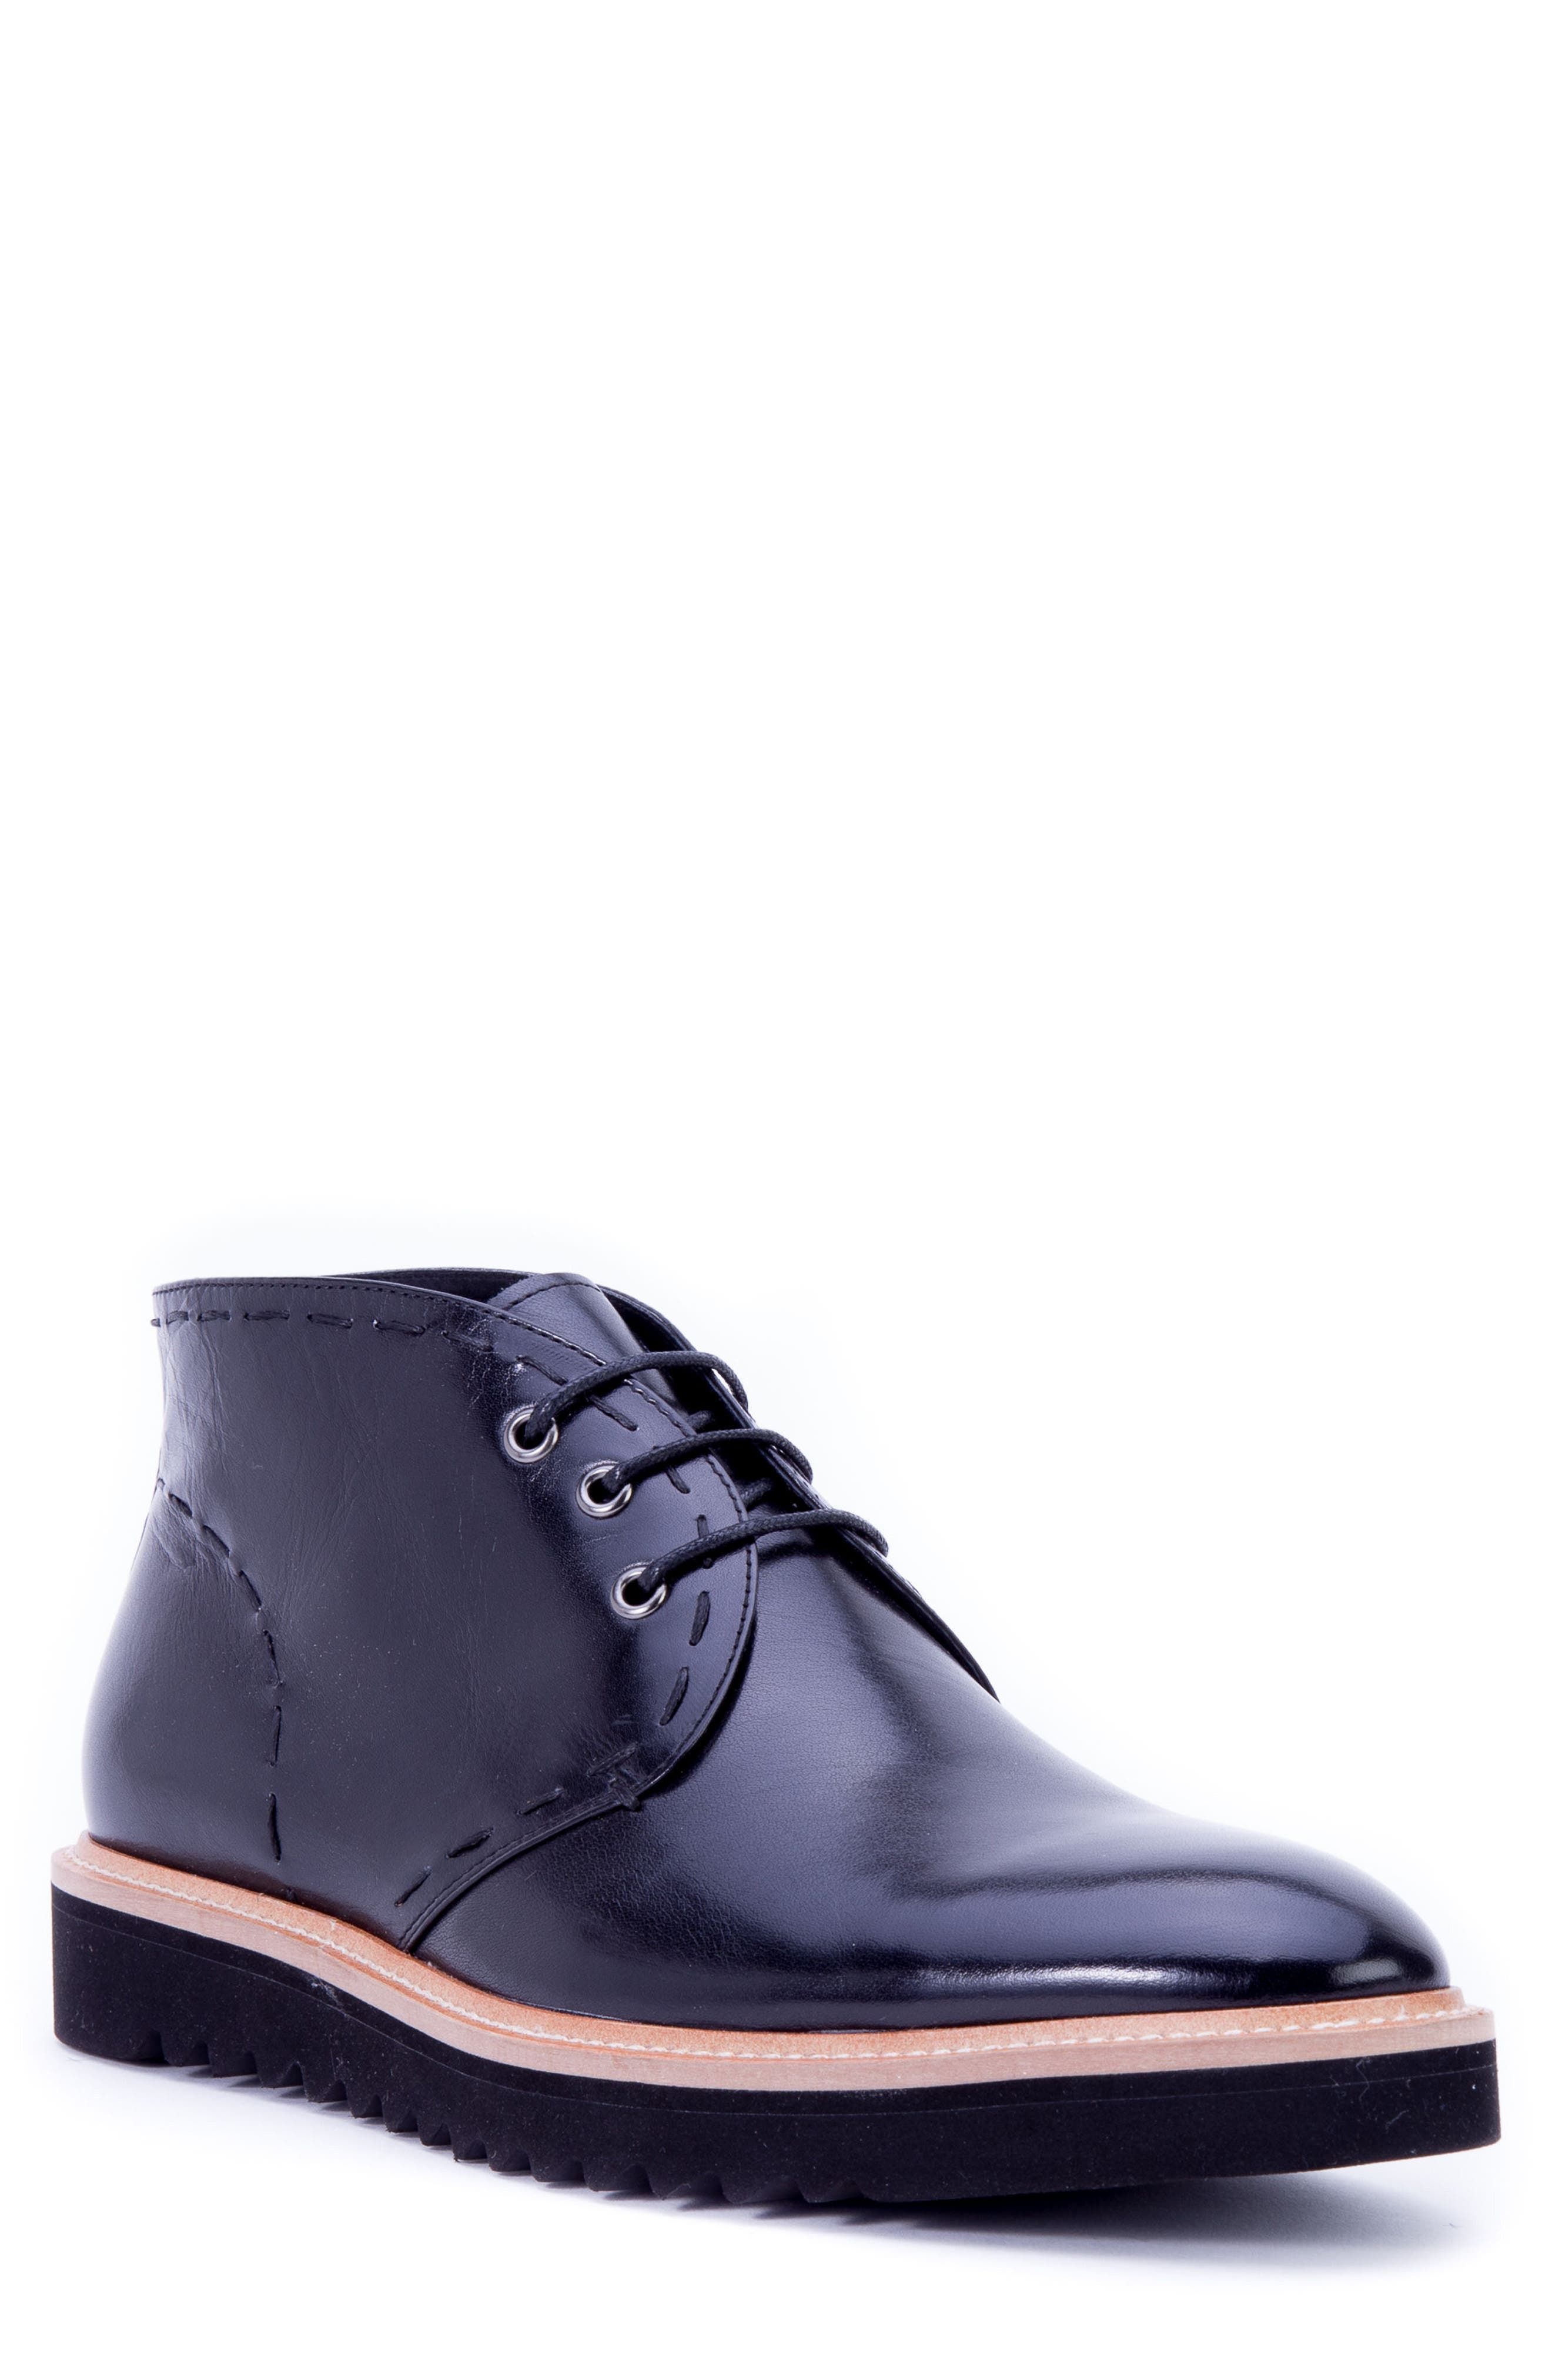 Lombardo Chukka Boot,                         Main,                         color, Black Leather